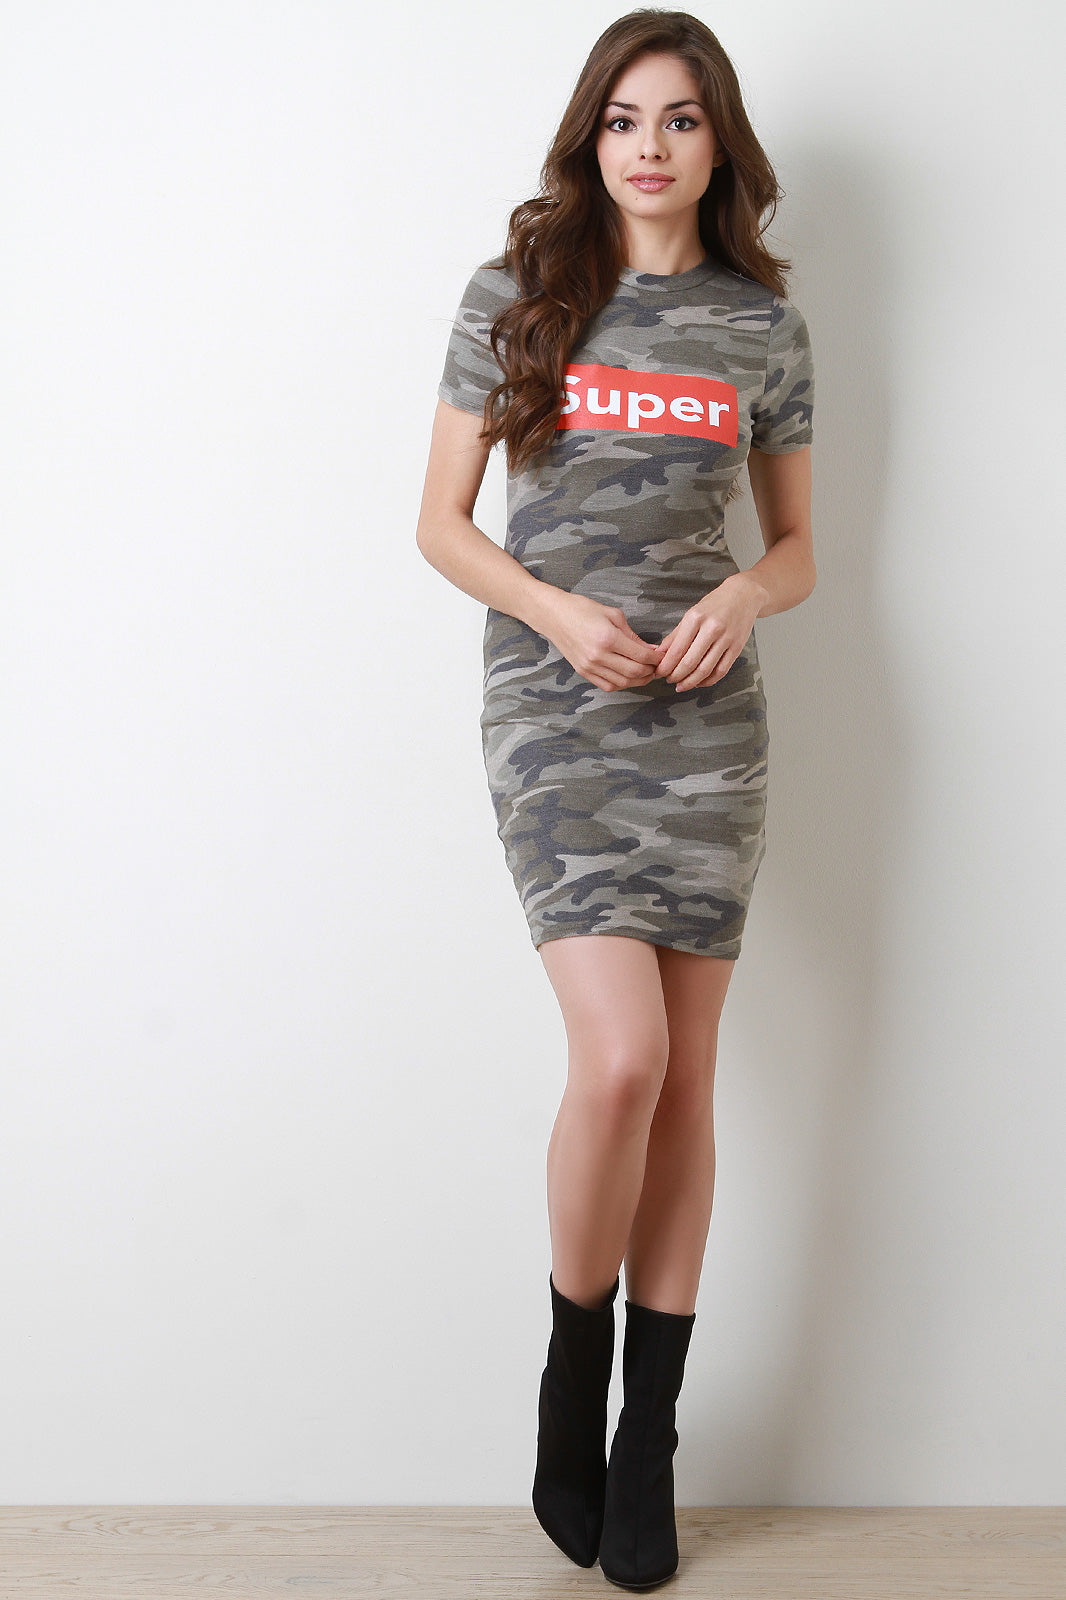 Olive Super Camouflage Bodycon Tee Dress